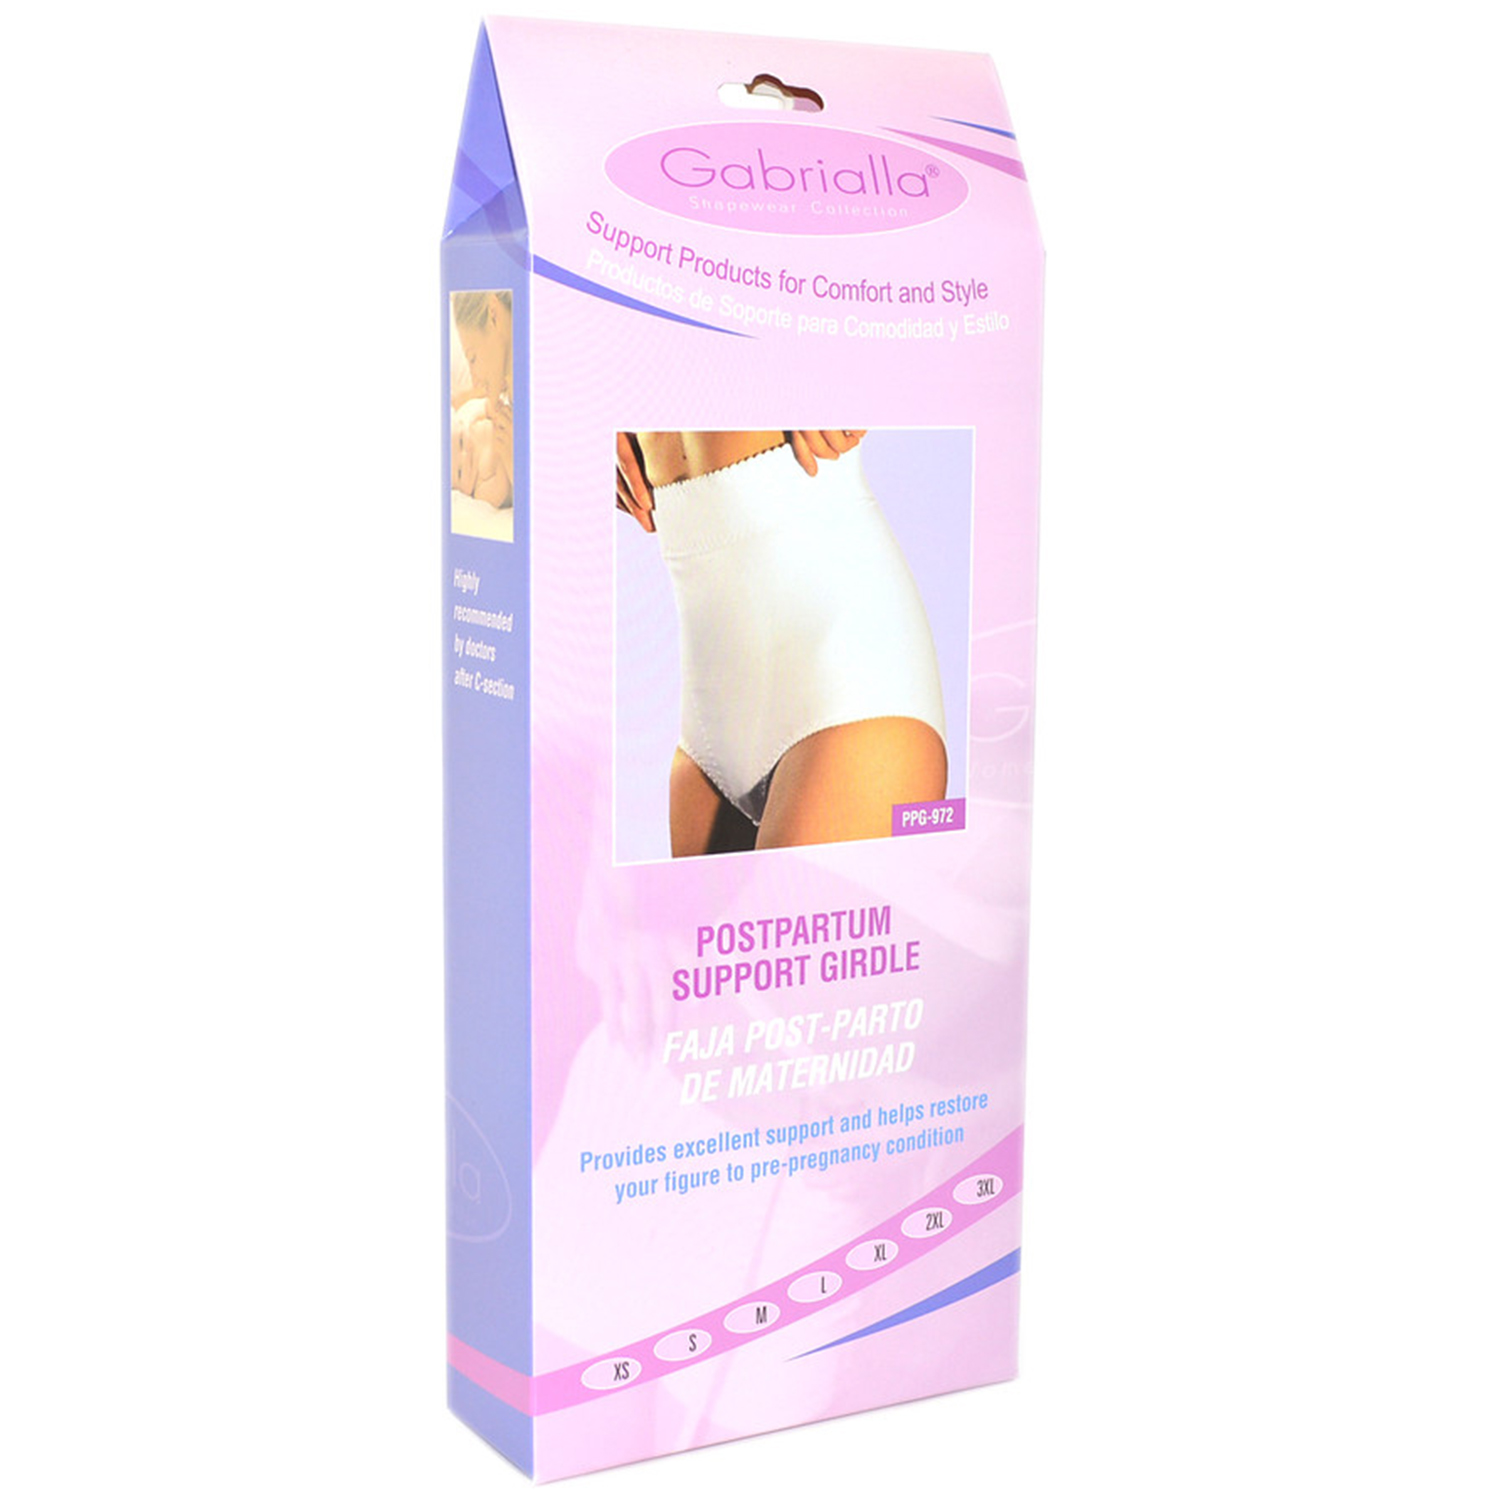 GABRIALLA Style PPG-972 Postpartum Support Girdle